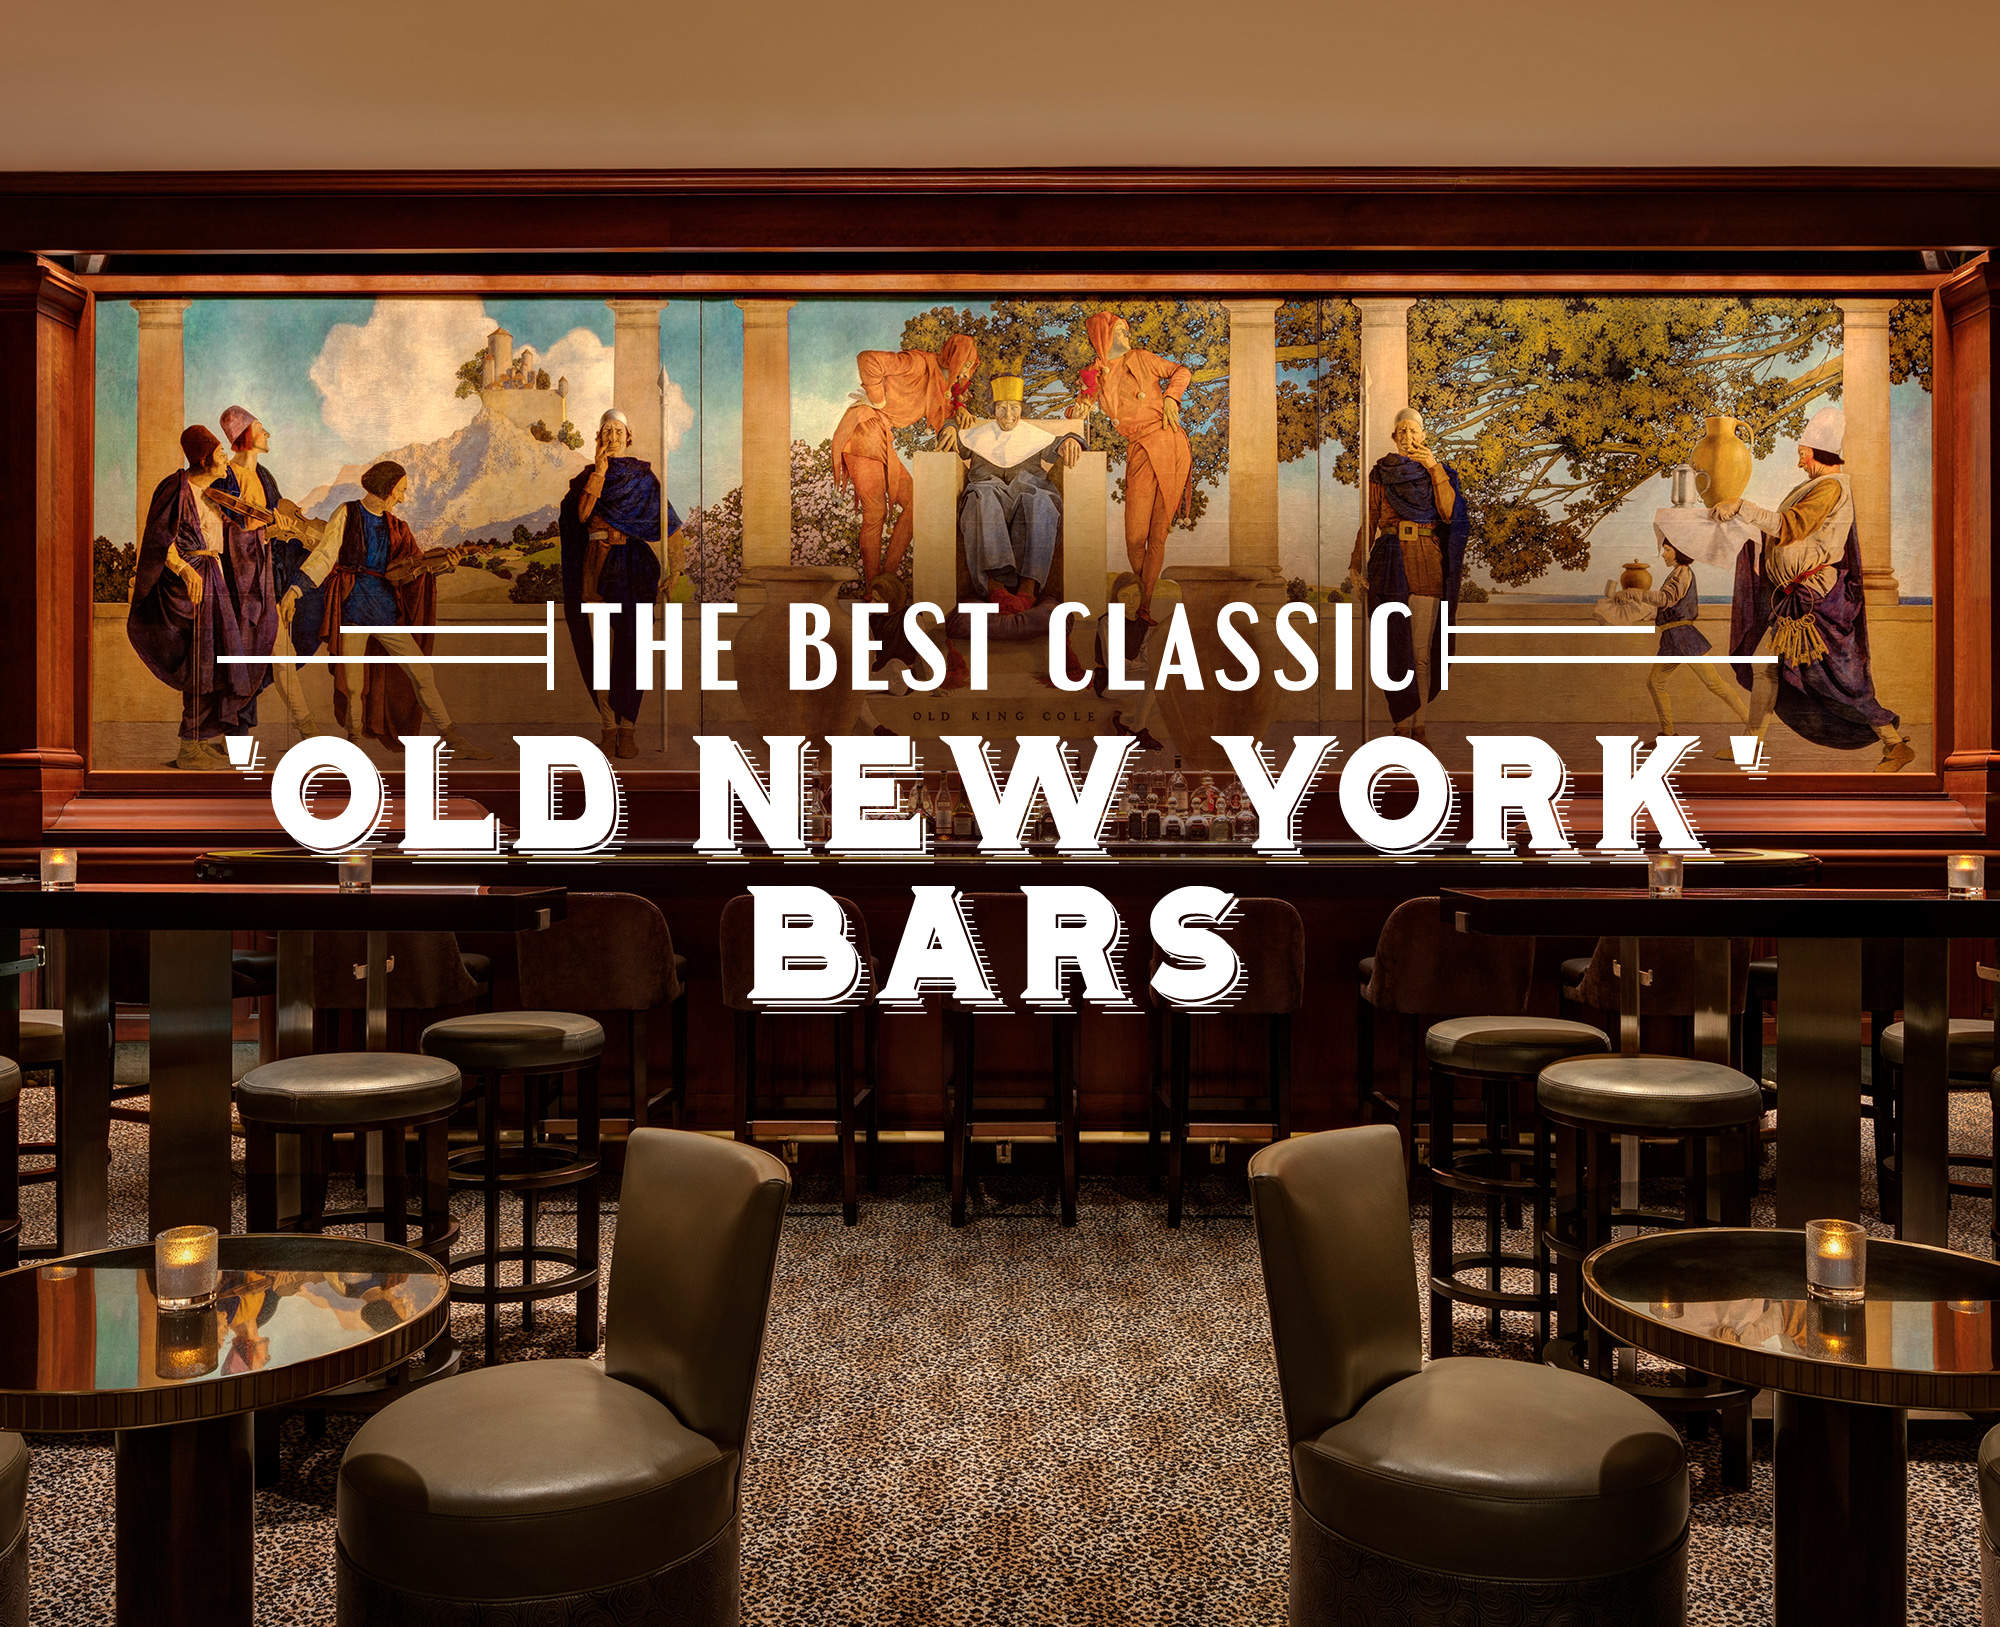 The Definitive Guide to Classic 'Old New York' Bars